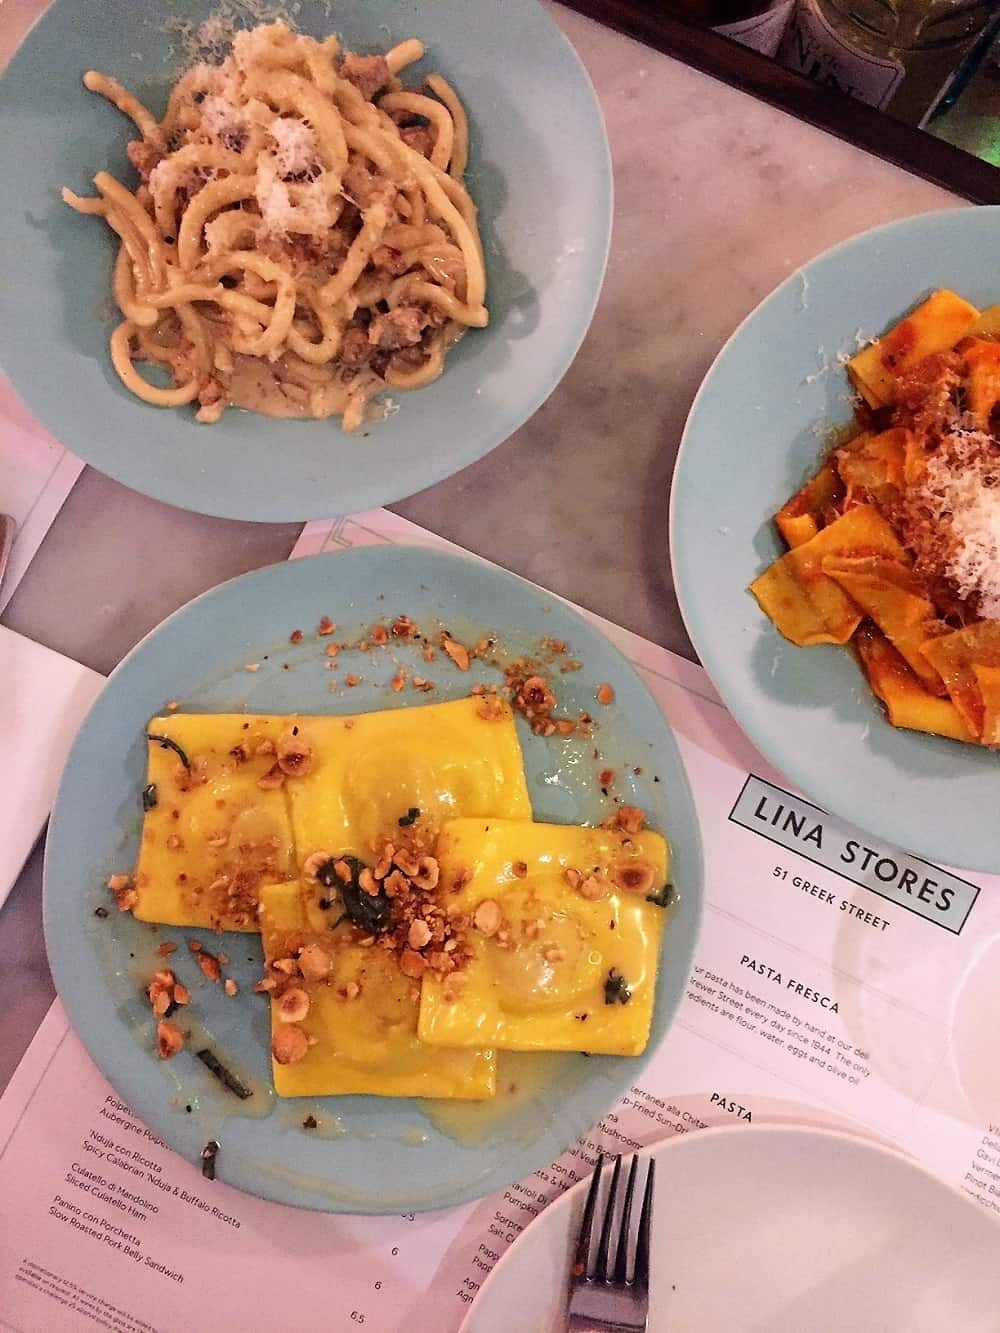 Fresh pasta dishes from Lina Stores